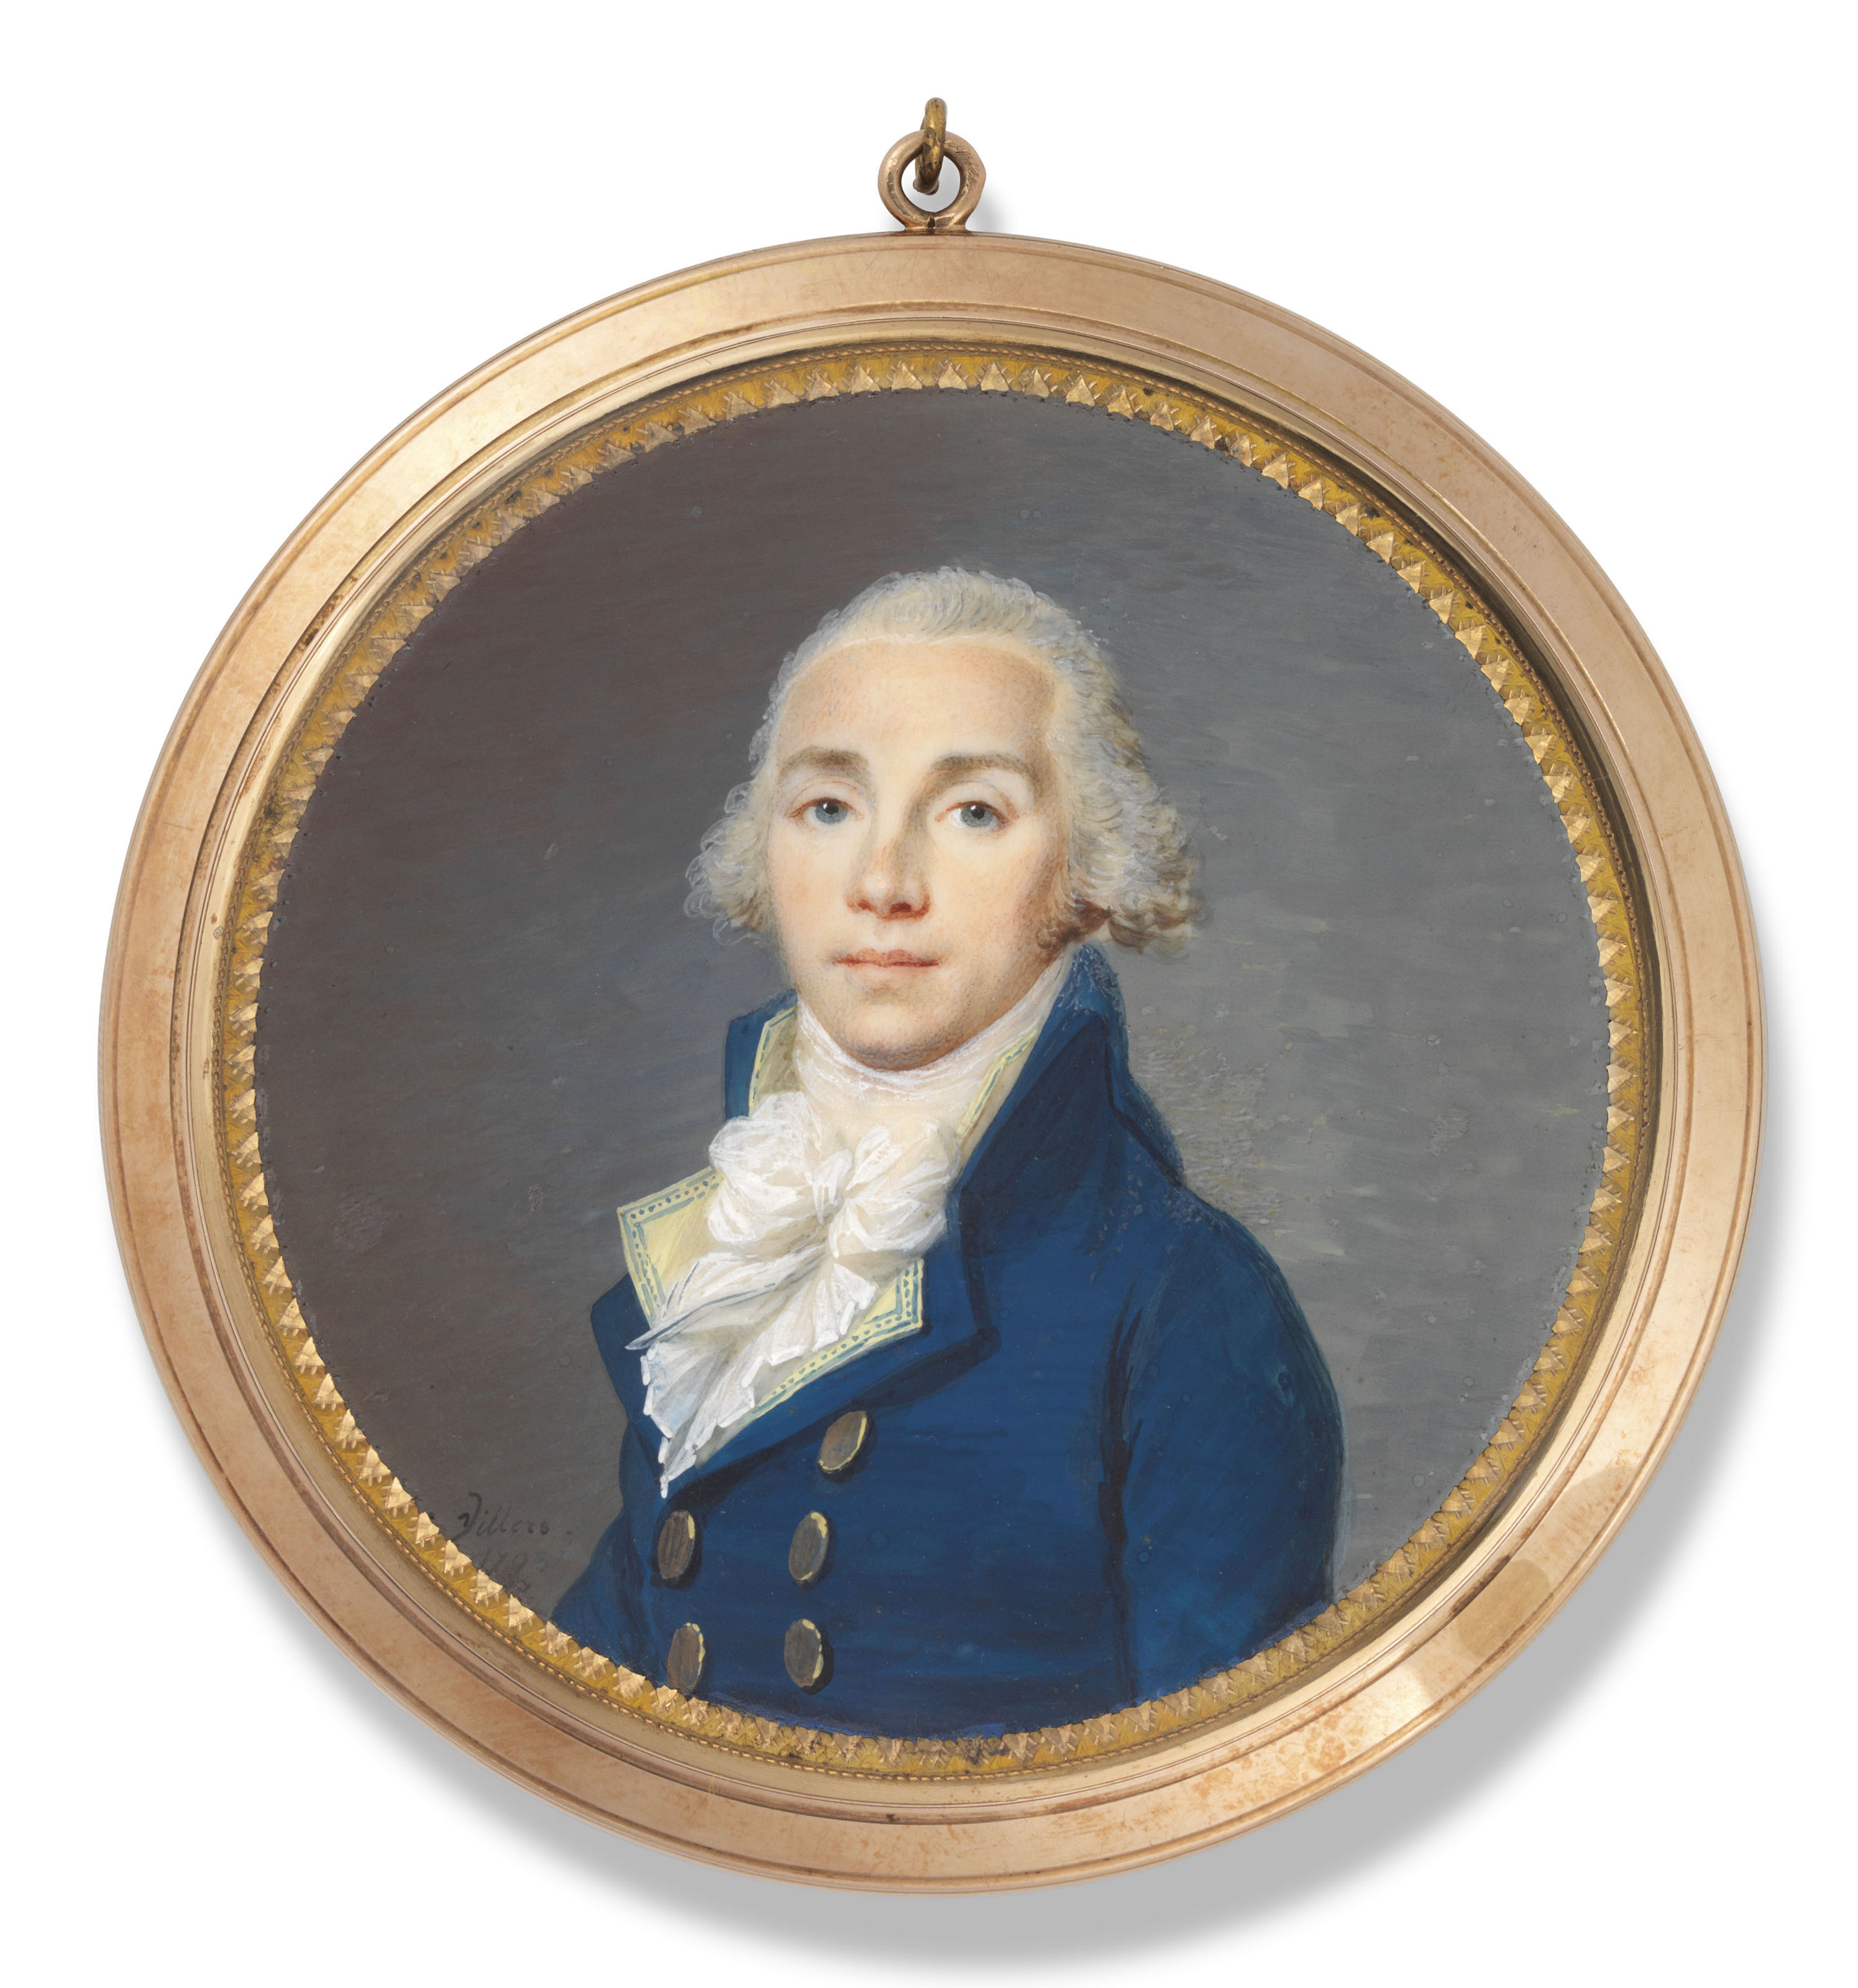 Villers (French, fl. c. 1780-1800)